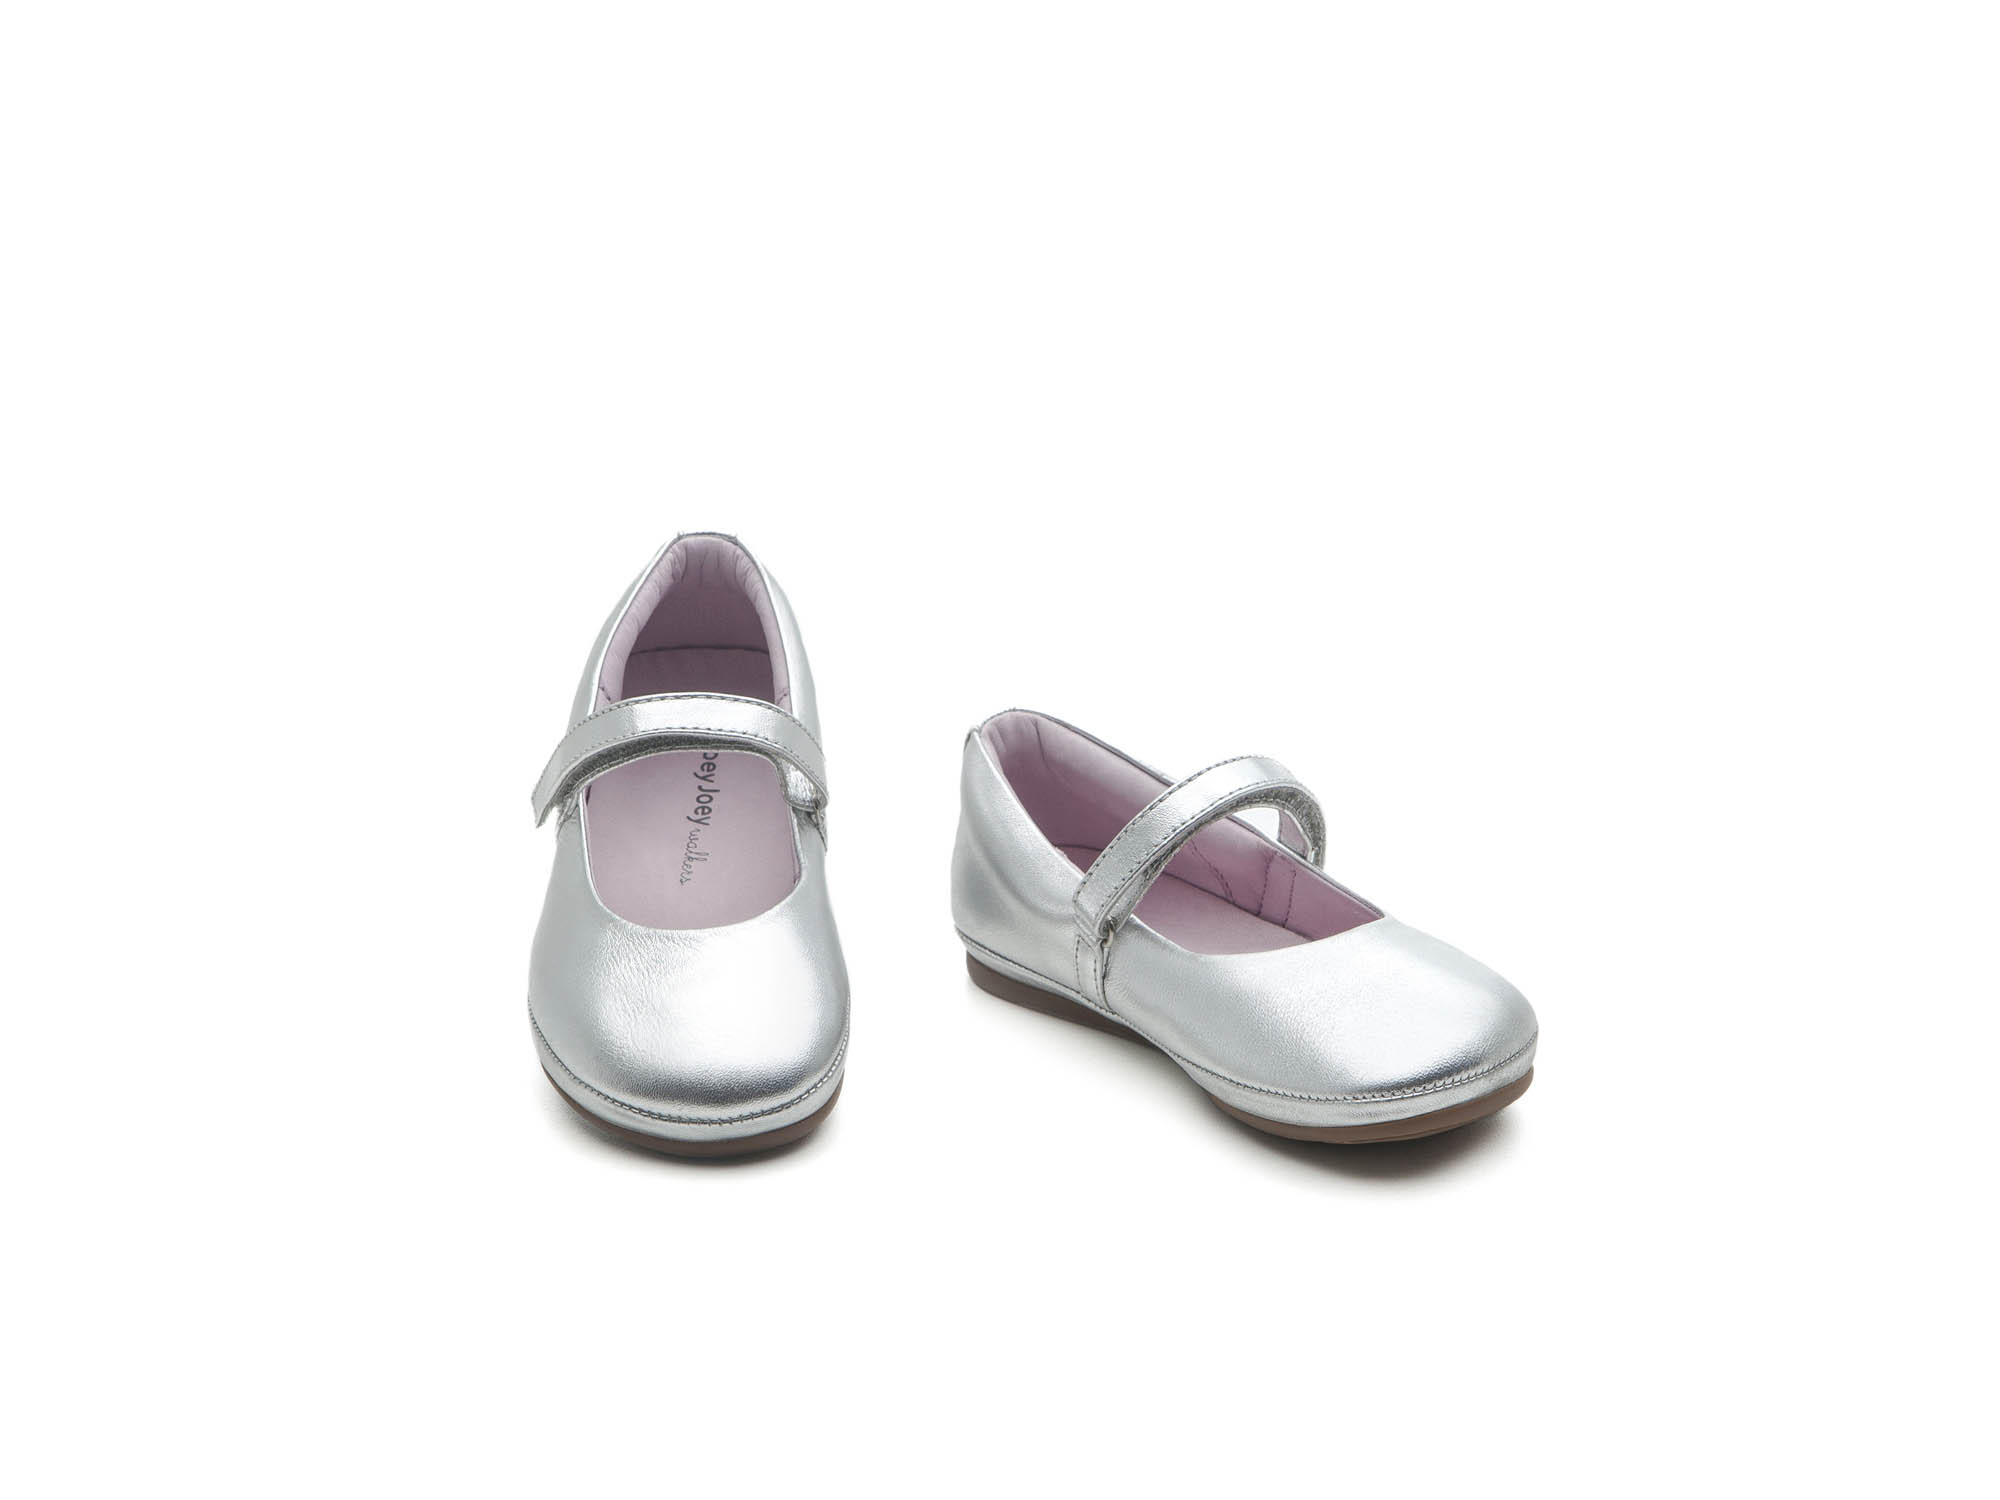 Boneca Little Twirl Sterling Silver Toddler 2 à 4 anos - 1